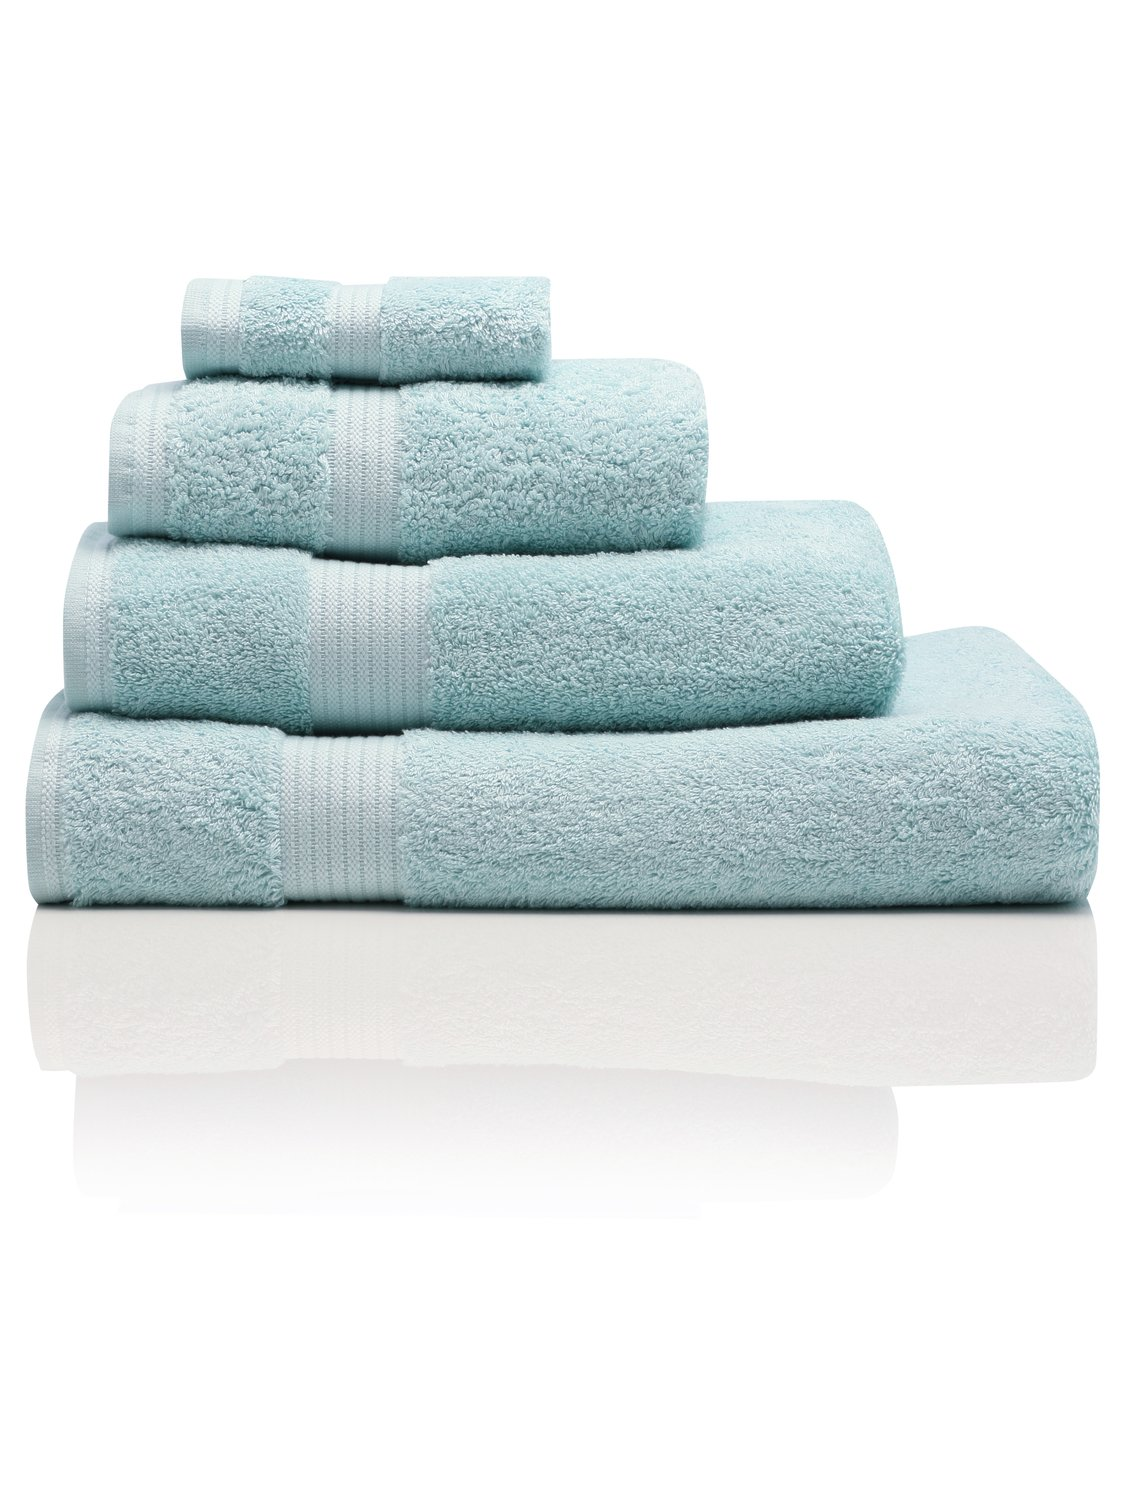 Image of 100% Combed Cotton 580Gsm Luxury Soft And Absorbent Bath Sheet - Peppermint